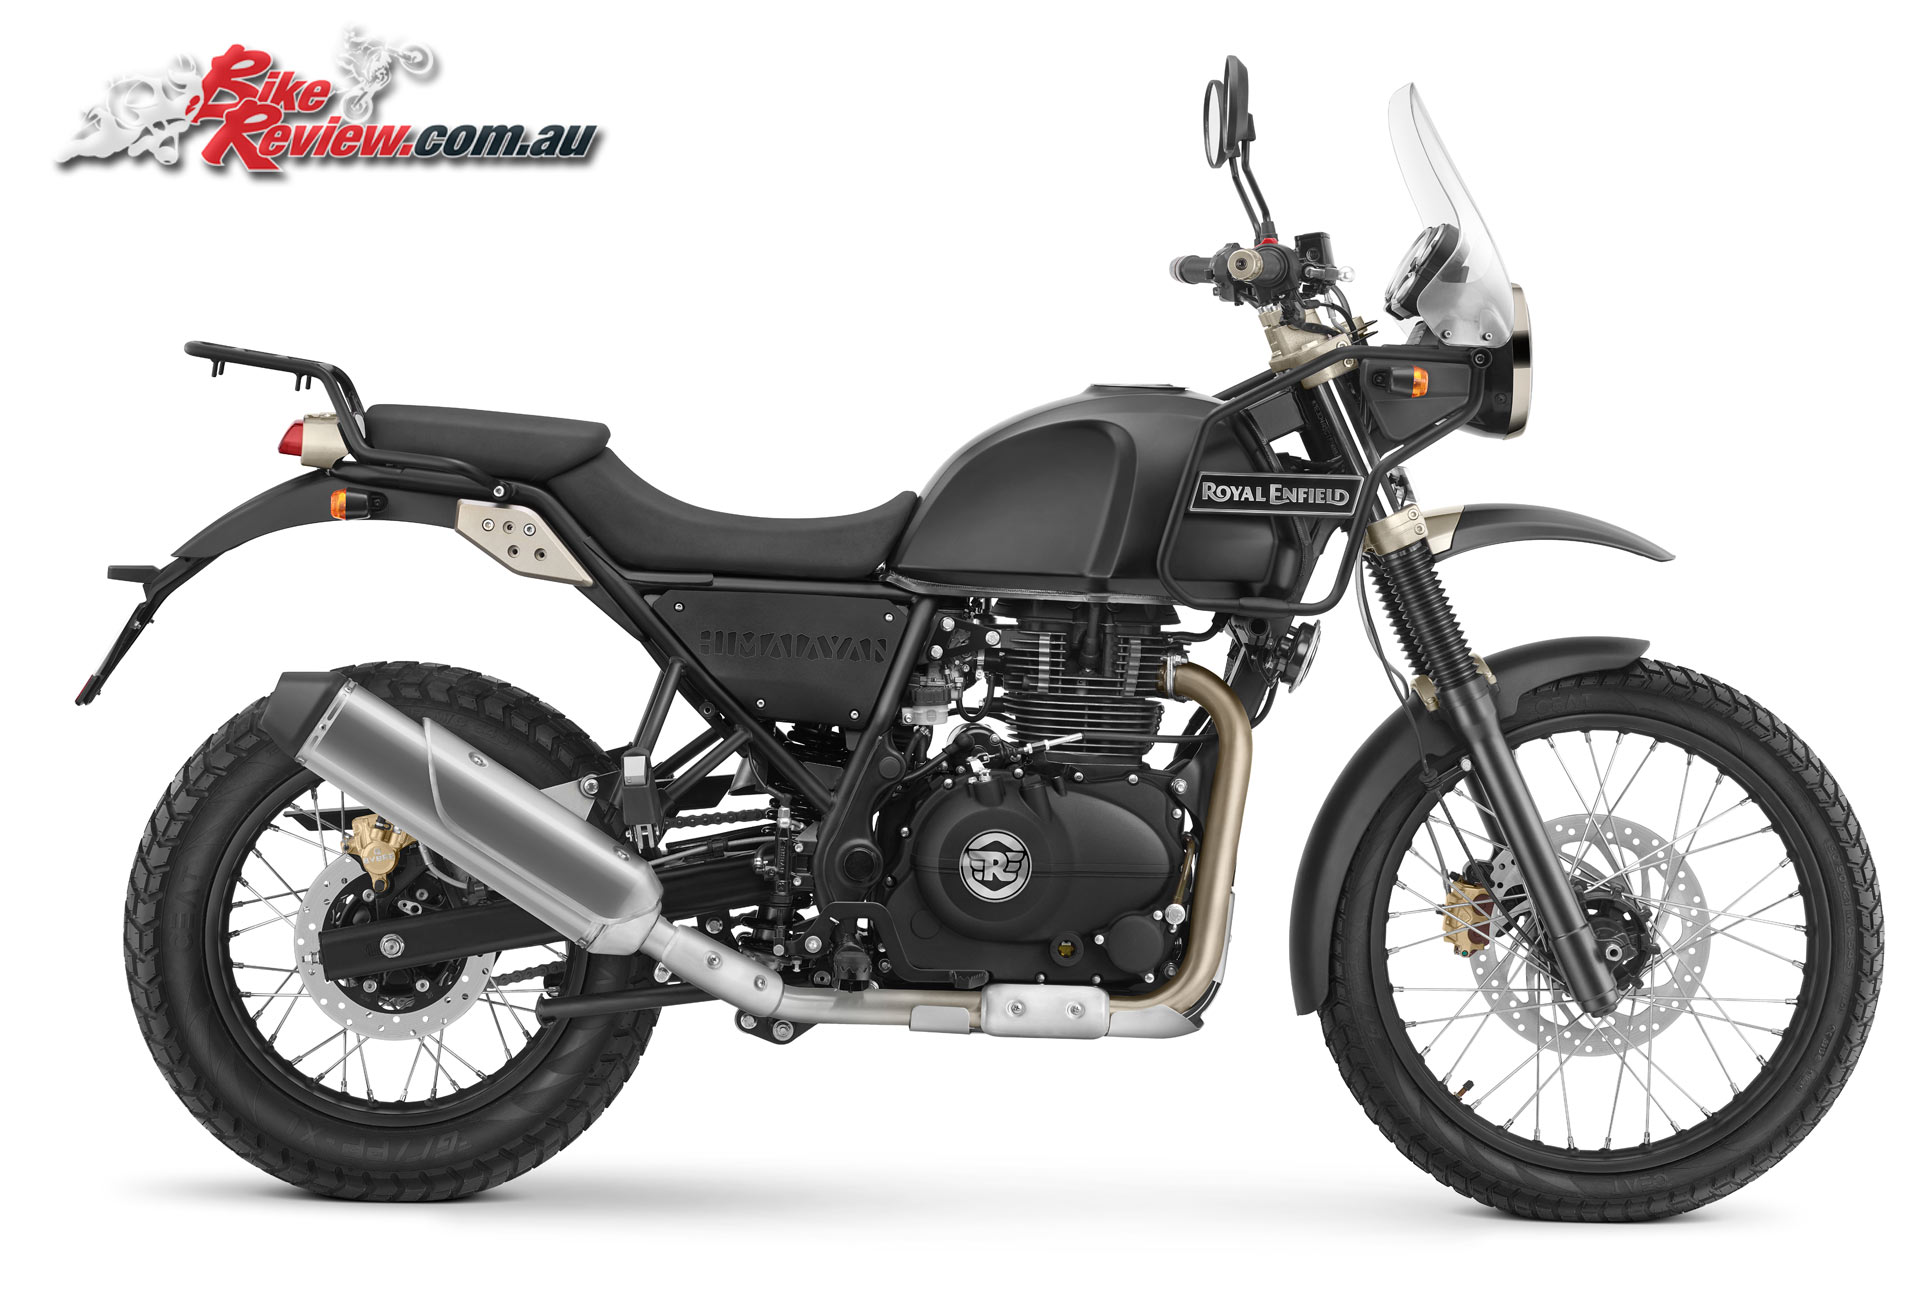 2017 Royal Enfield Himalayan Bike Review